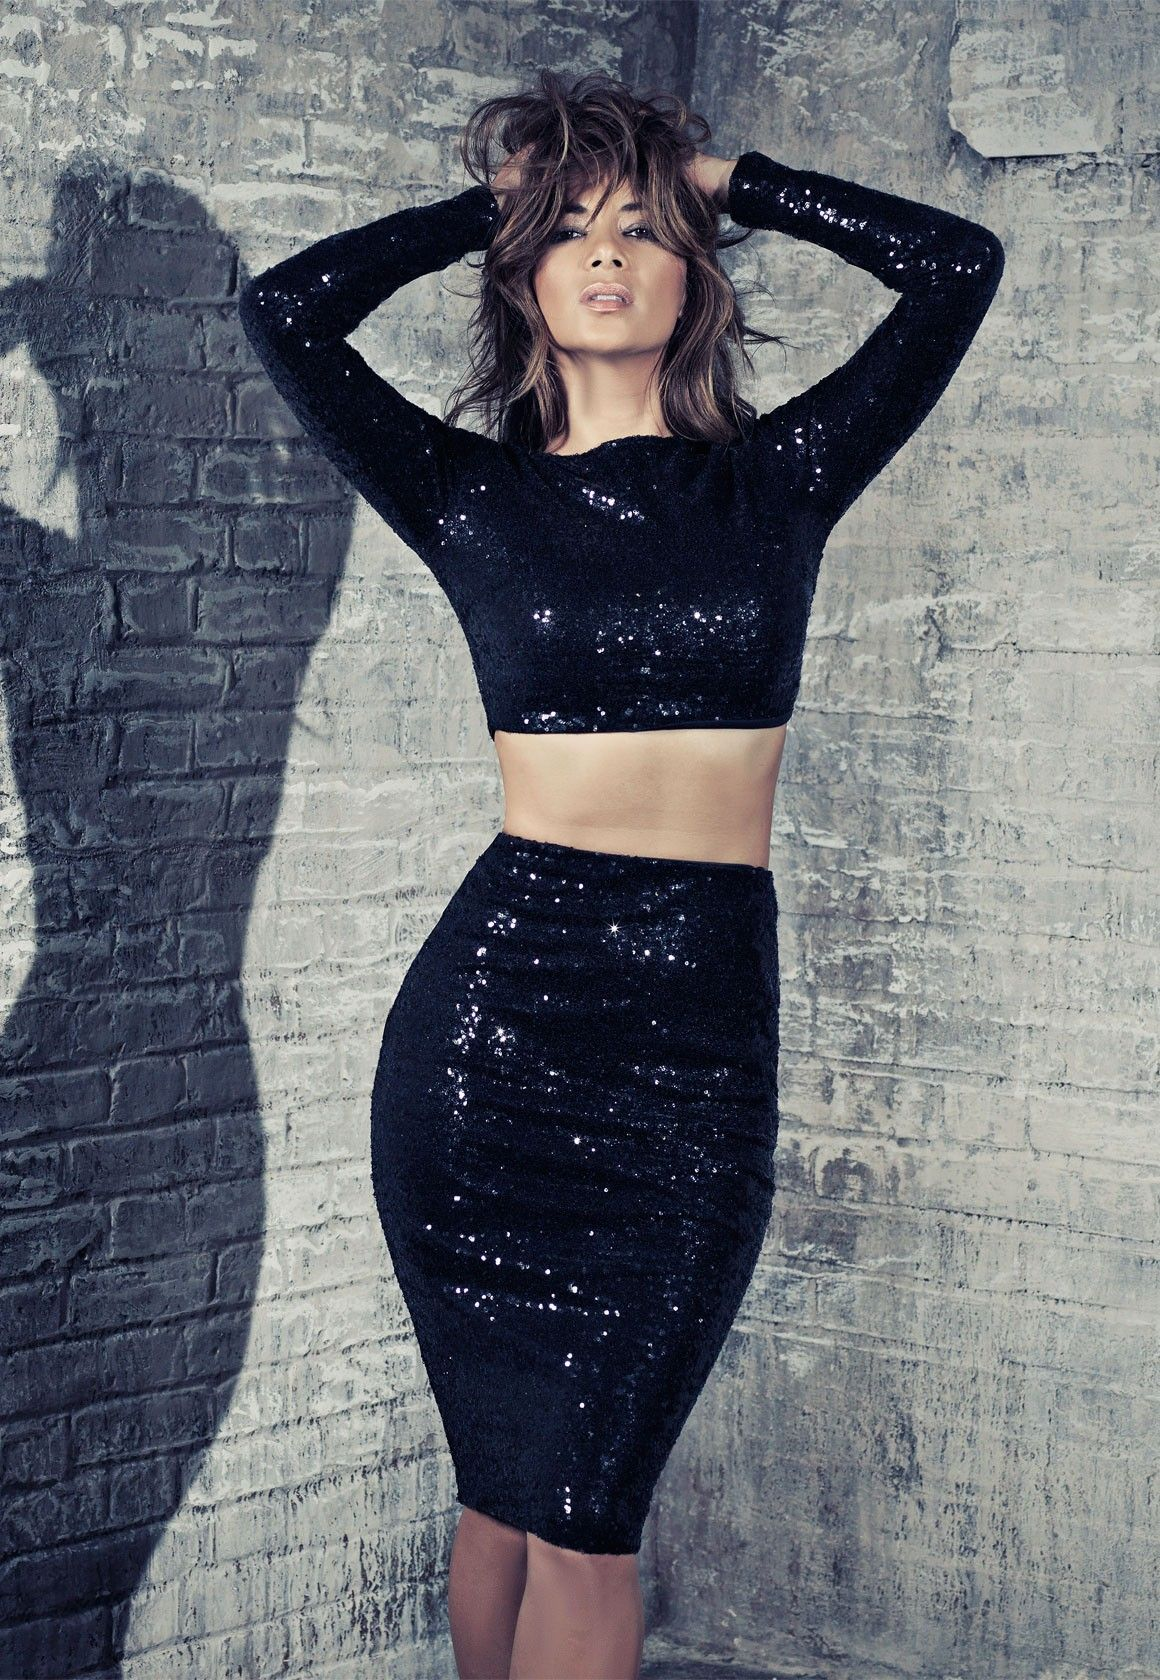 Nicole Scherzinger Flashes Toned Abs As She Unveils Outfits From Her Latest Fashion Range